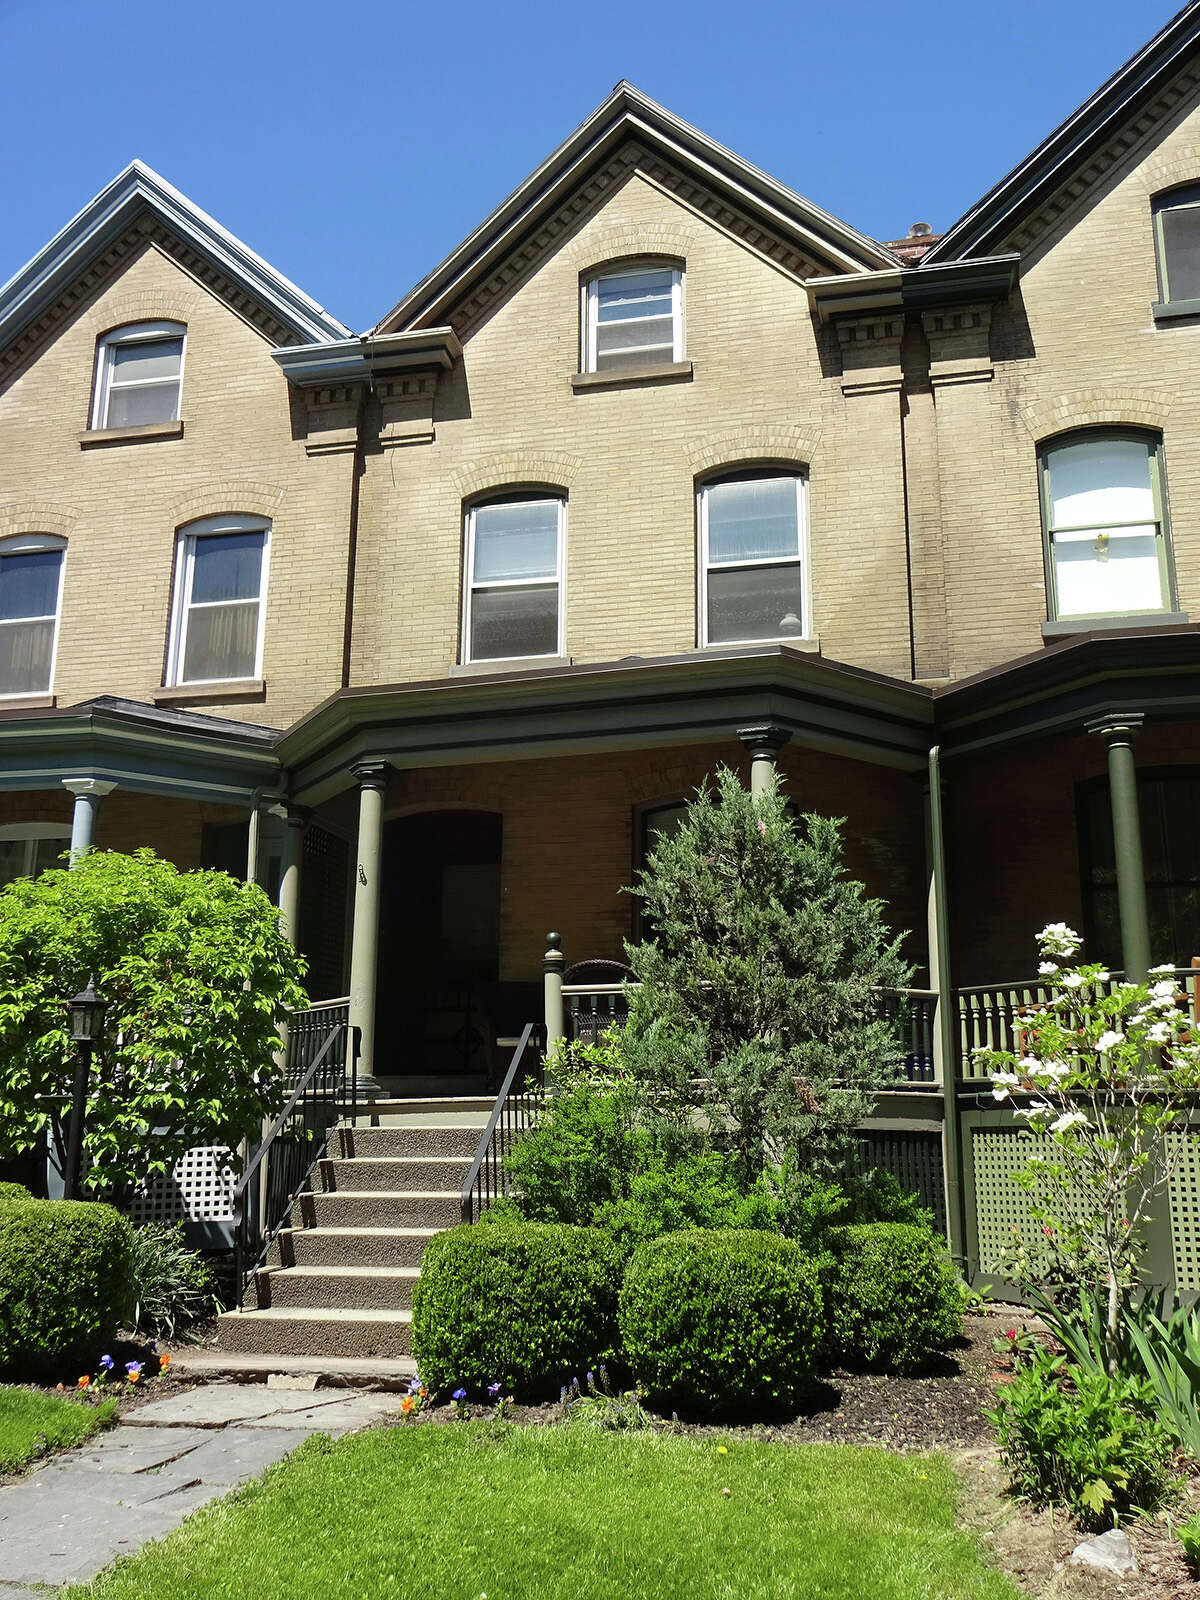 House of the Week: 67 S. Lake Ave., Albany   Realtor: Brian Sinkoff of 518Realty   Discuss: Talk about this house